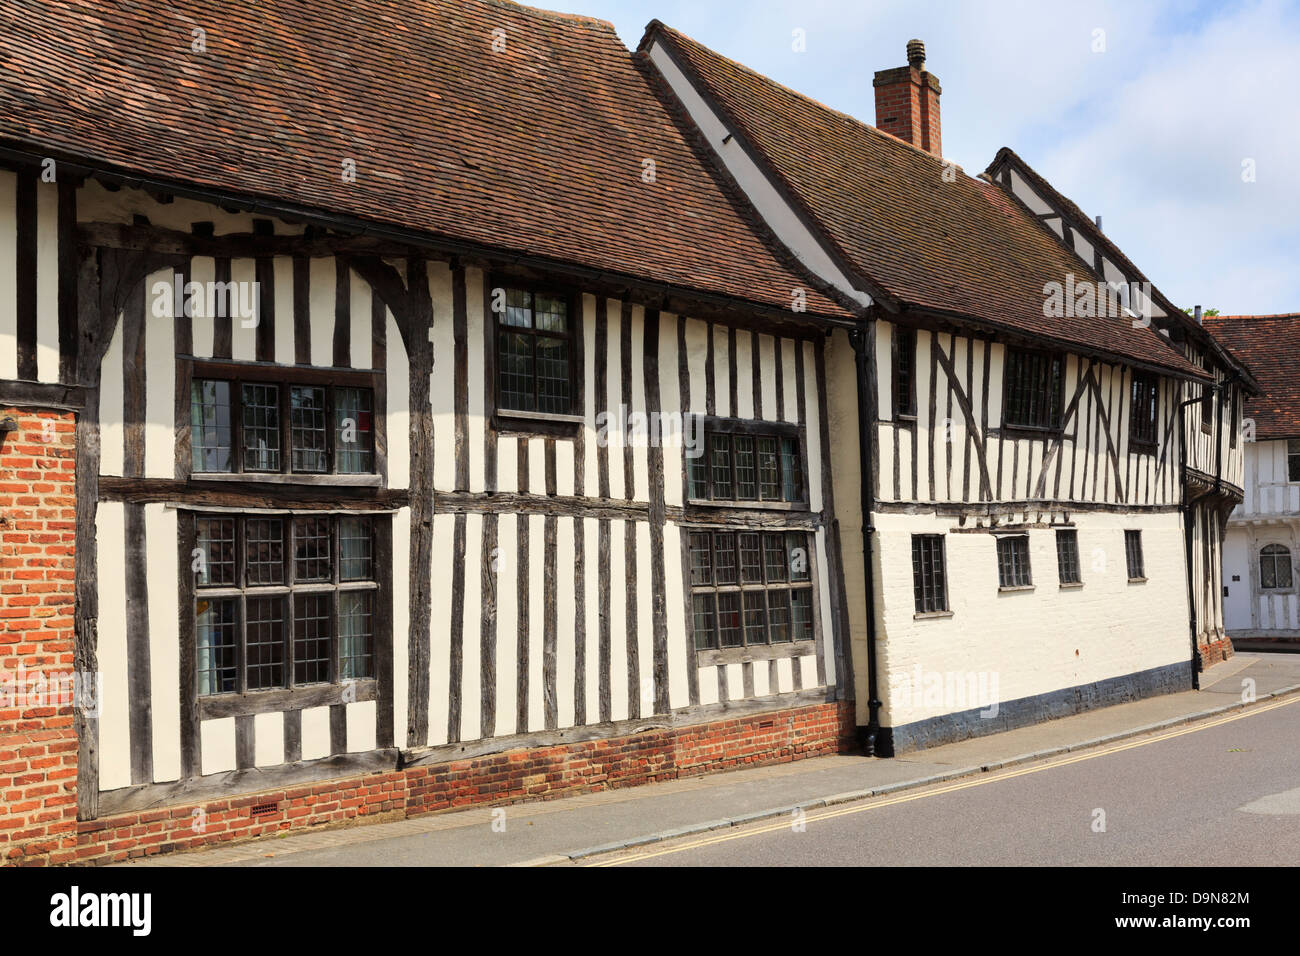 15th century timbered buildings in medieval village of Lavenham, Suffolk, England, UK, Britain - Stock Image